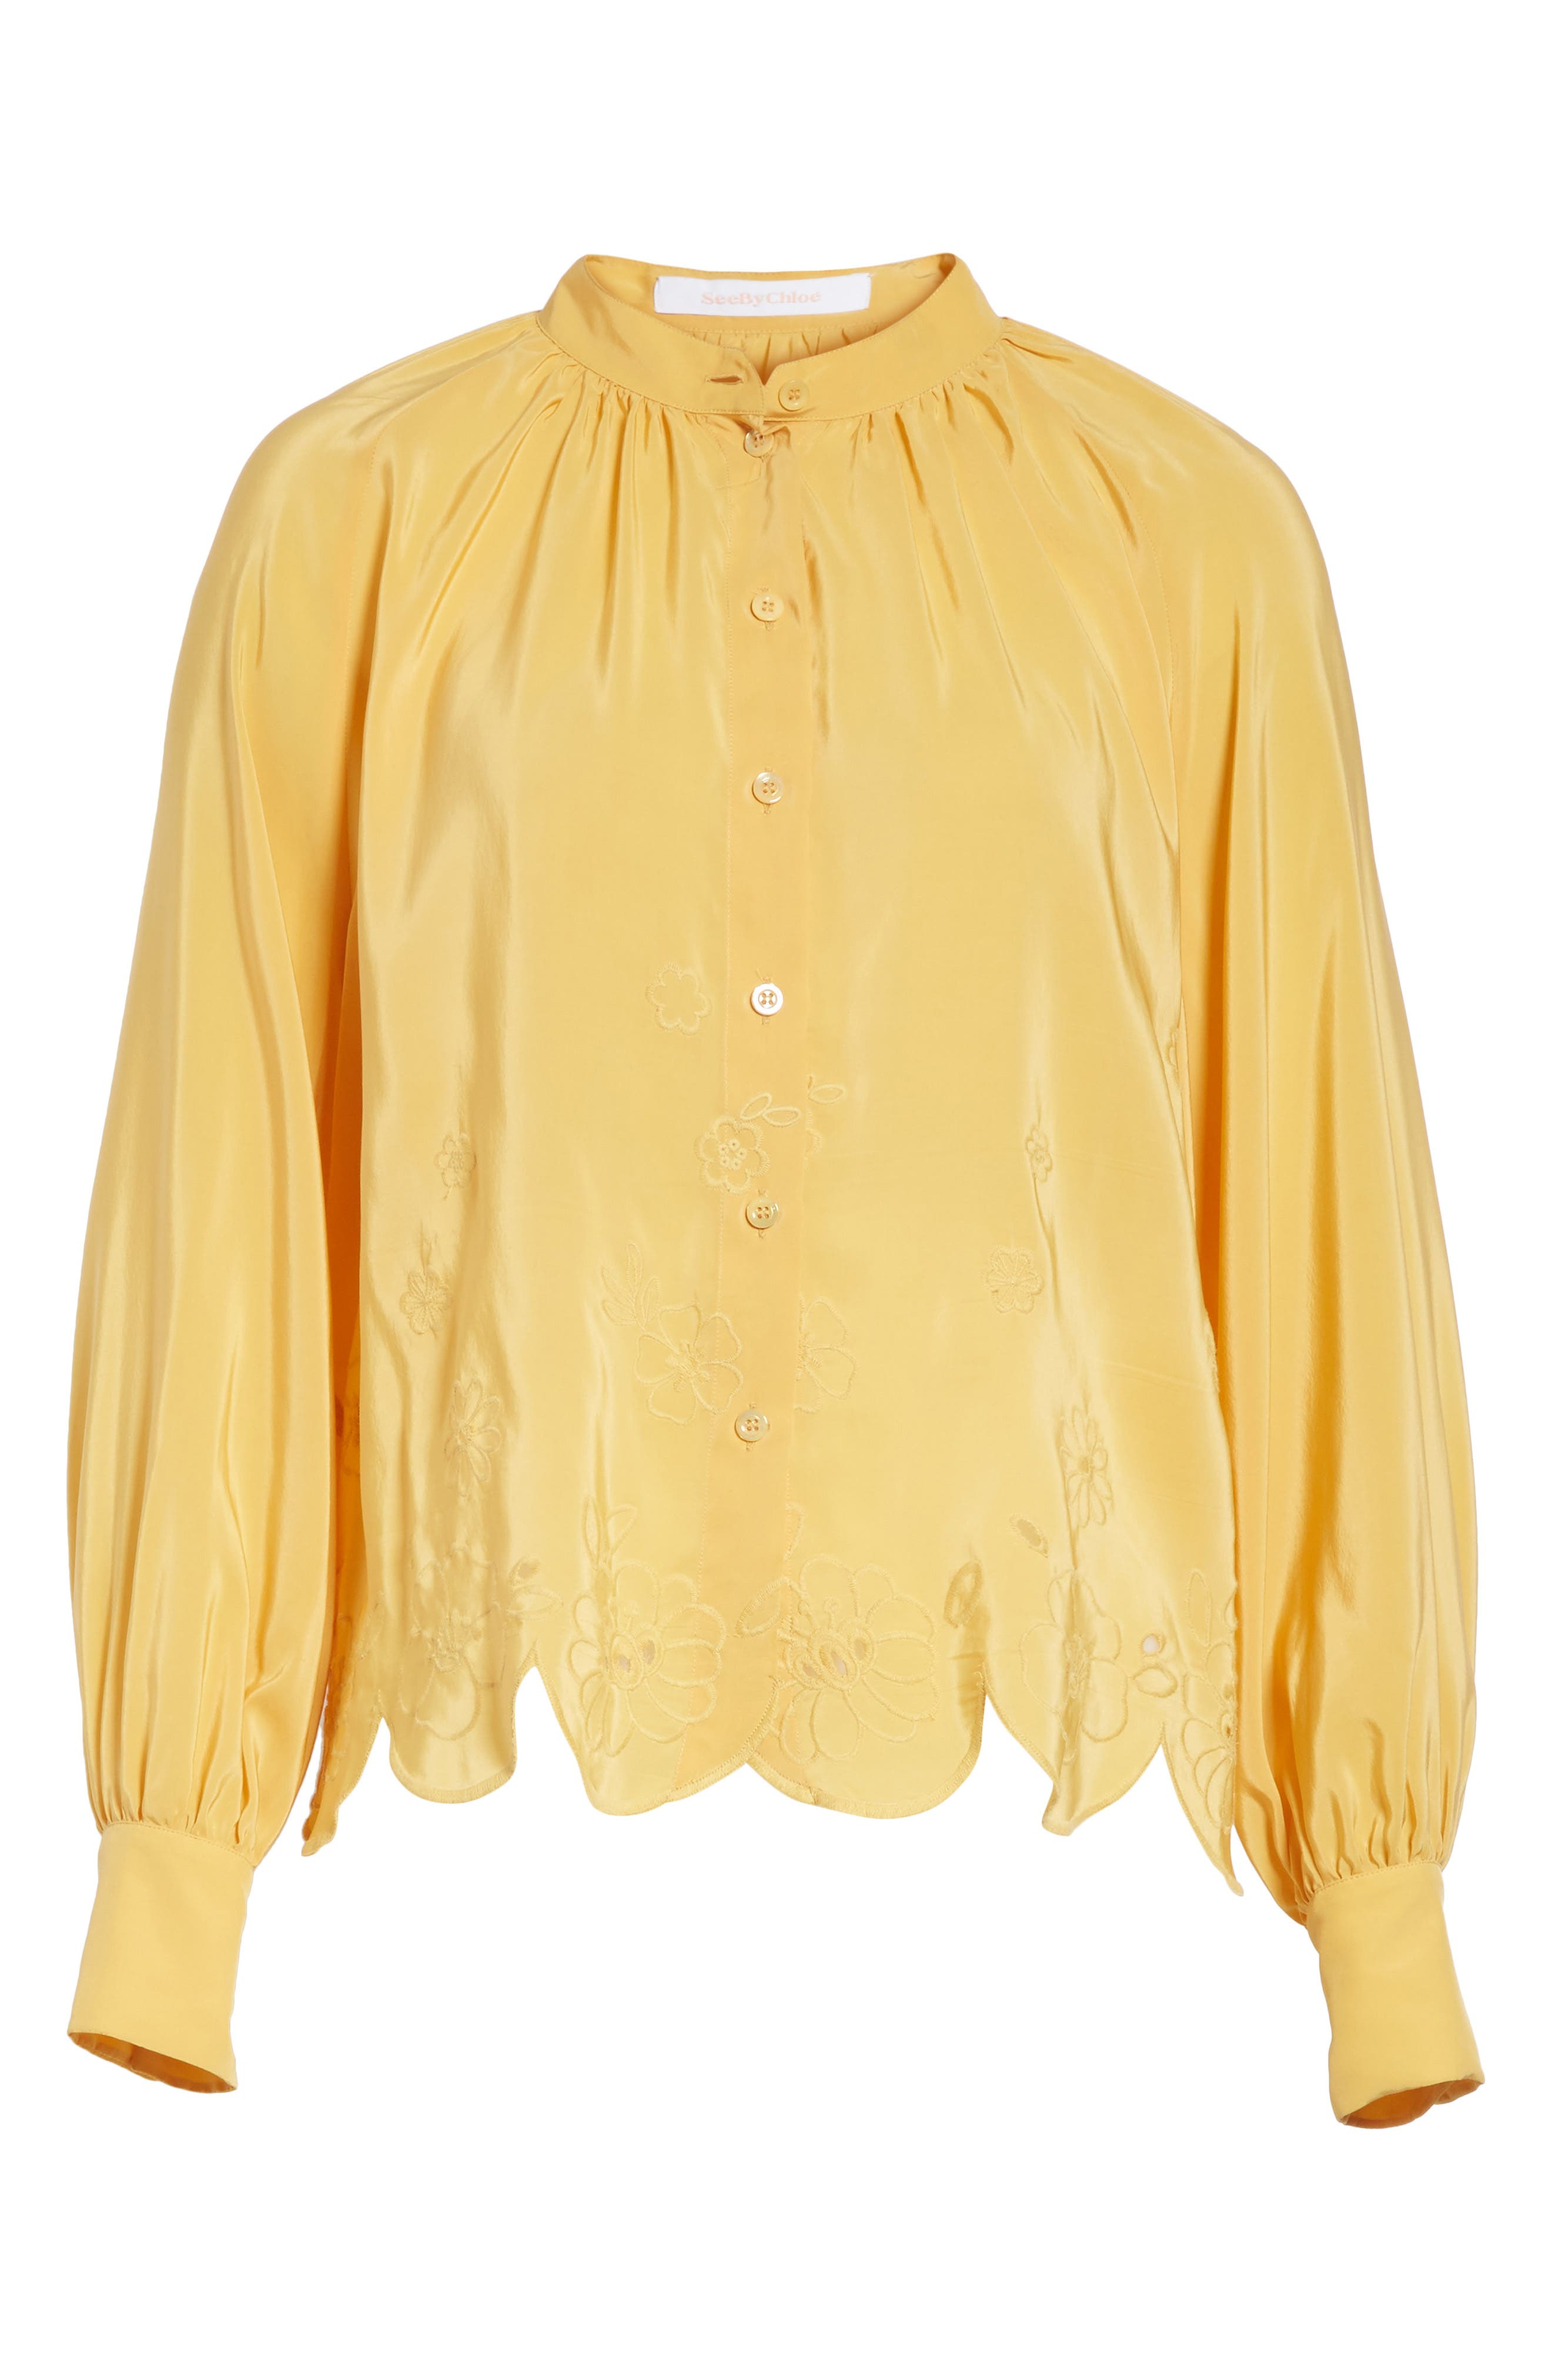 Embroidered Scallop Hem Shirt,                             Alternate thumbnail 6, color,                             Ochre